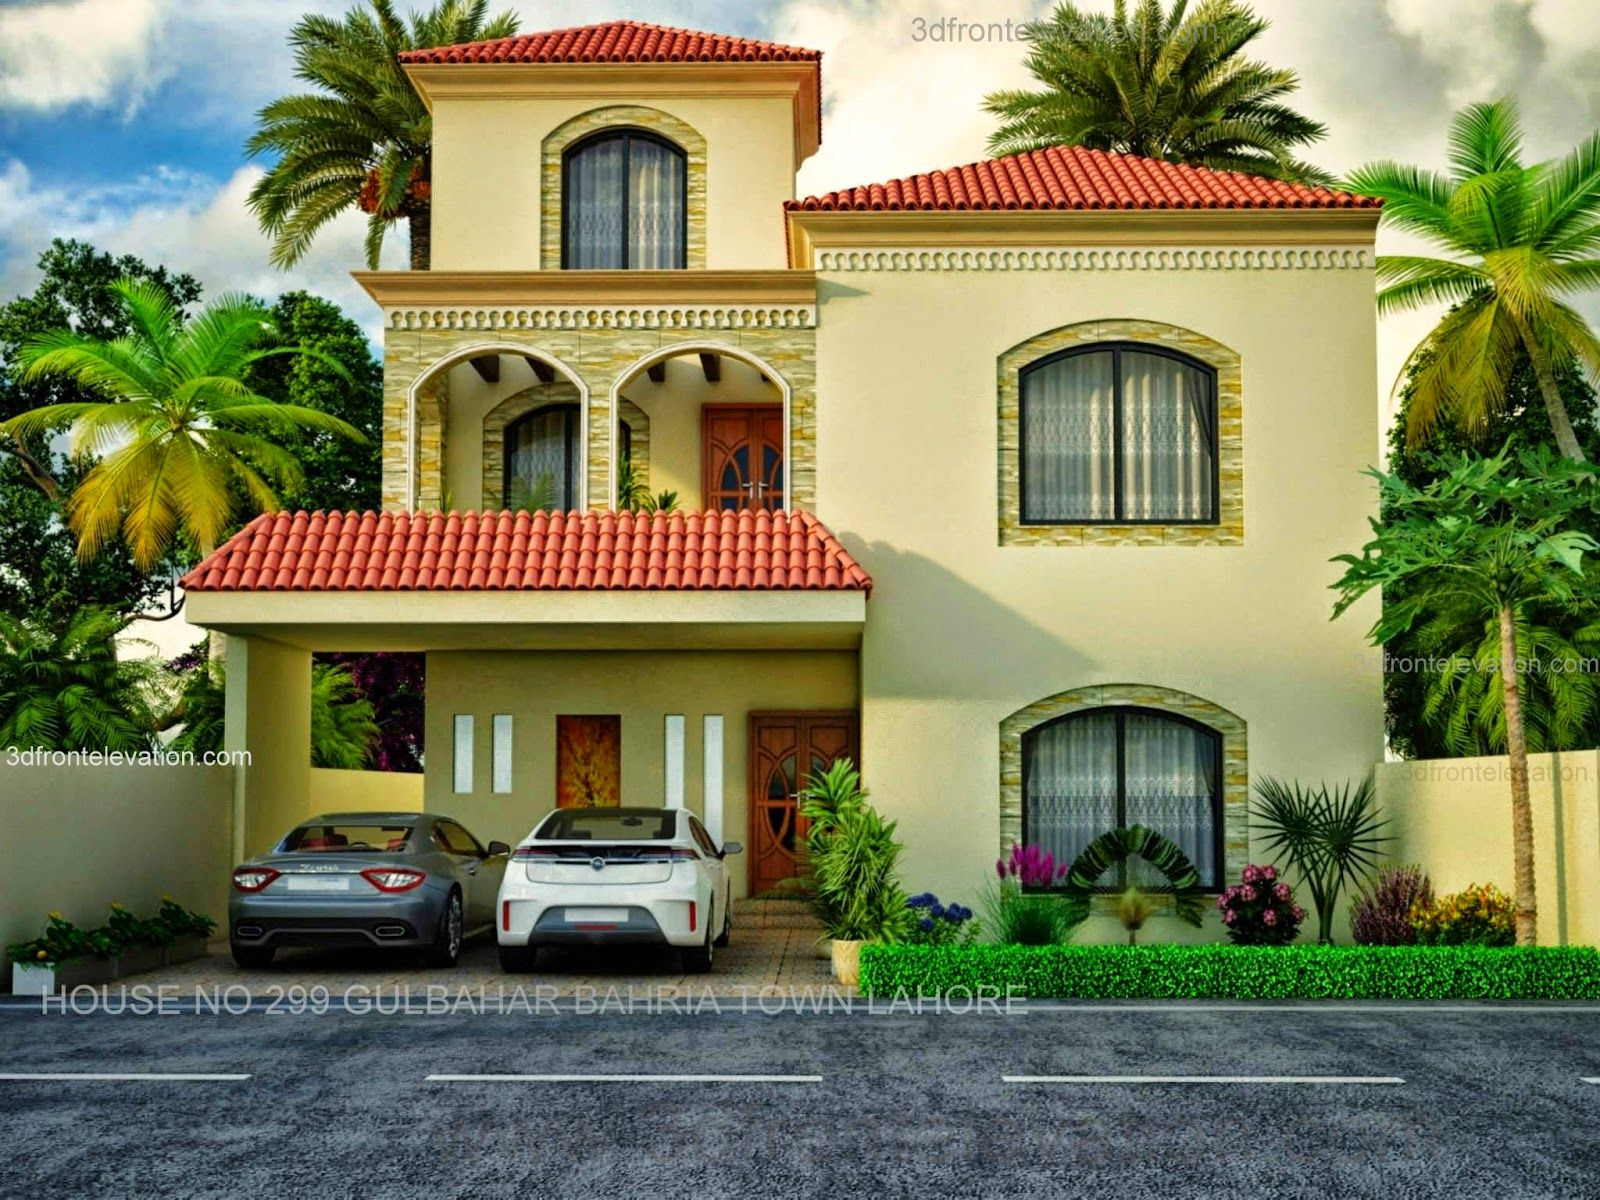 Cheap houses for sale in europe latest house for rent for European mansions for sale